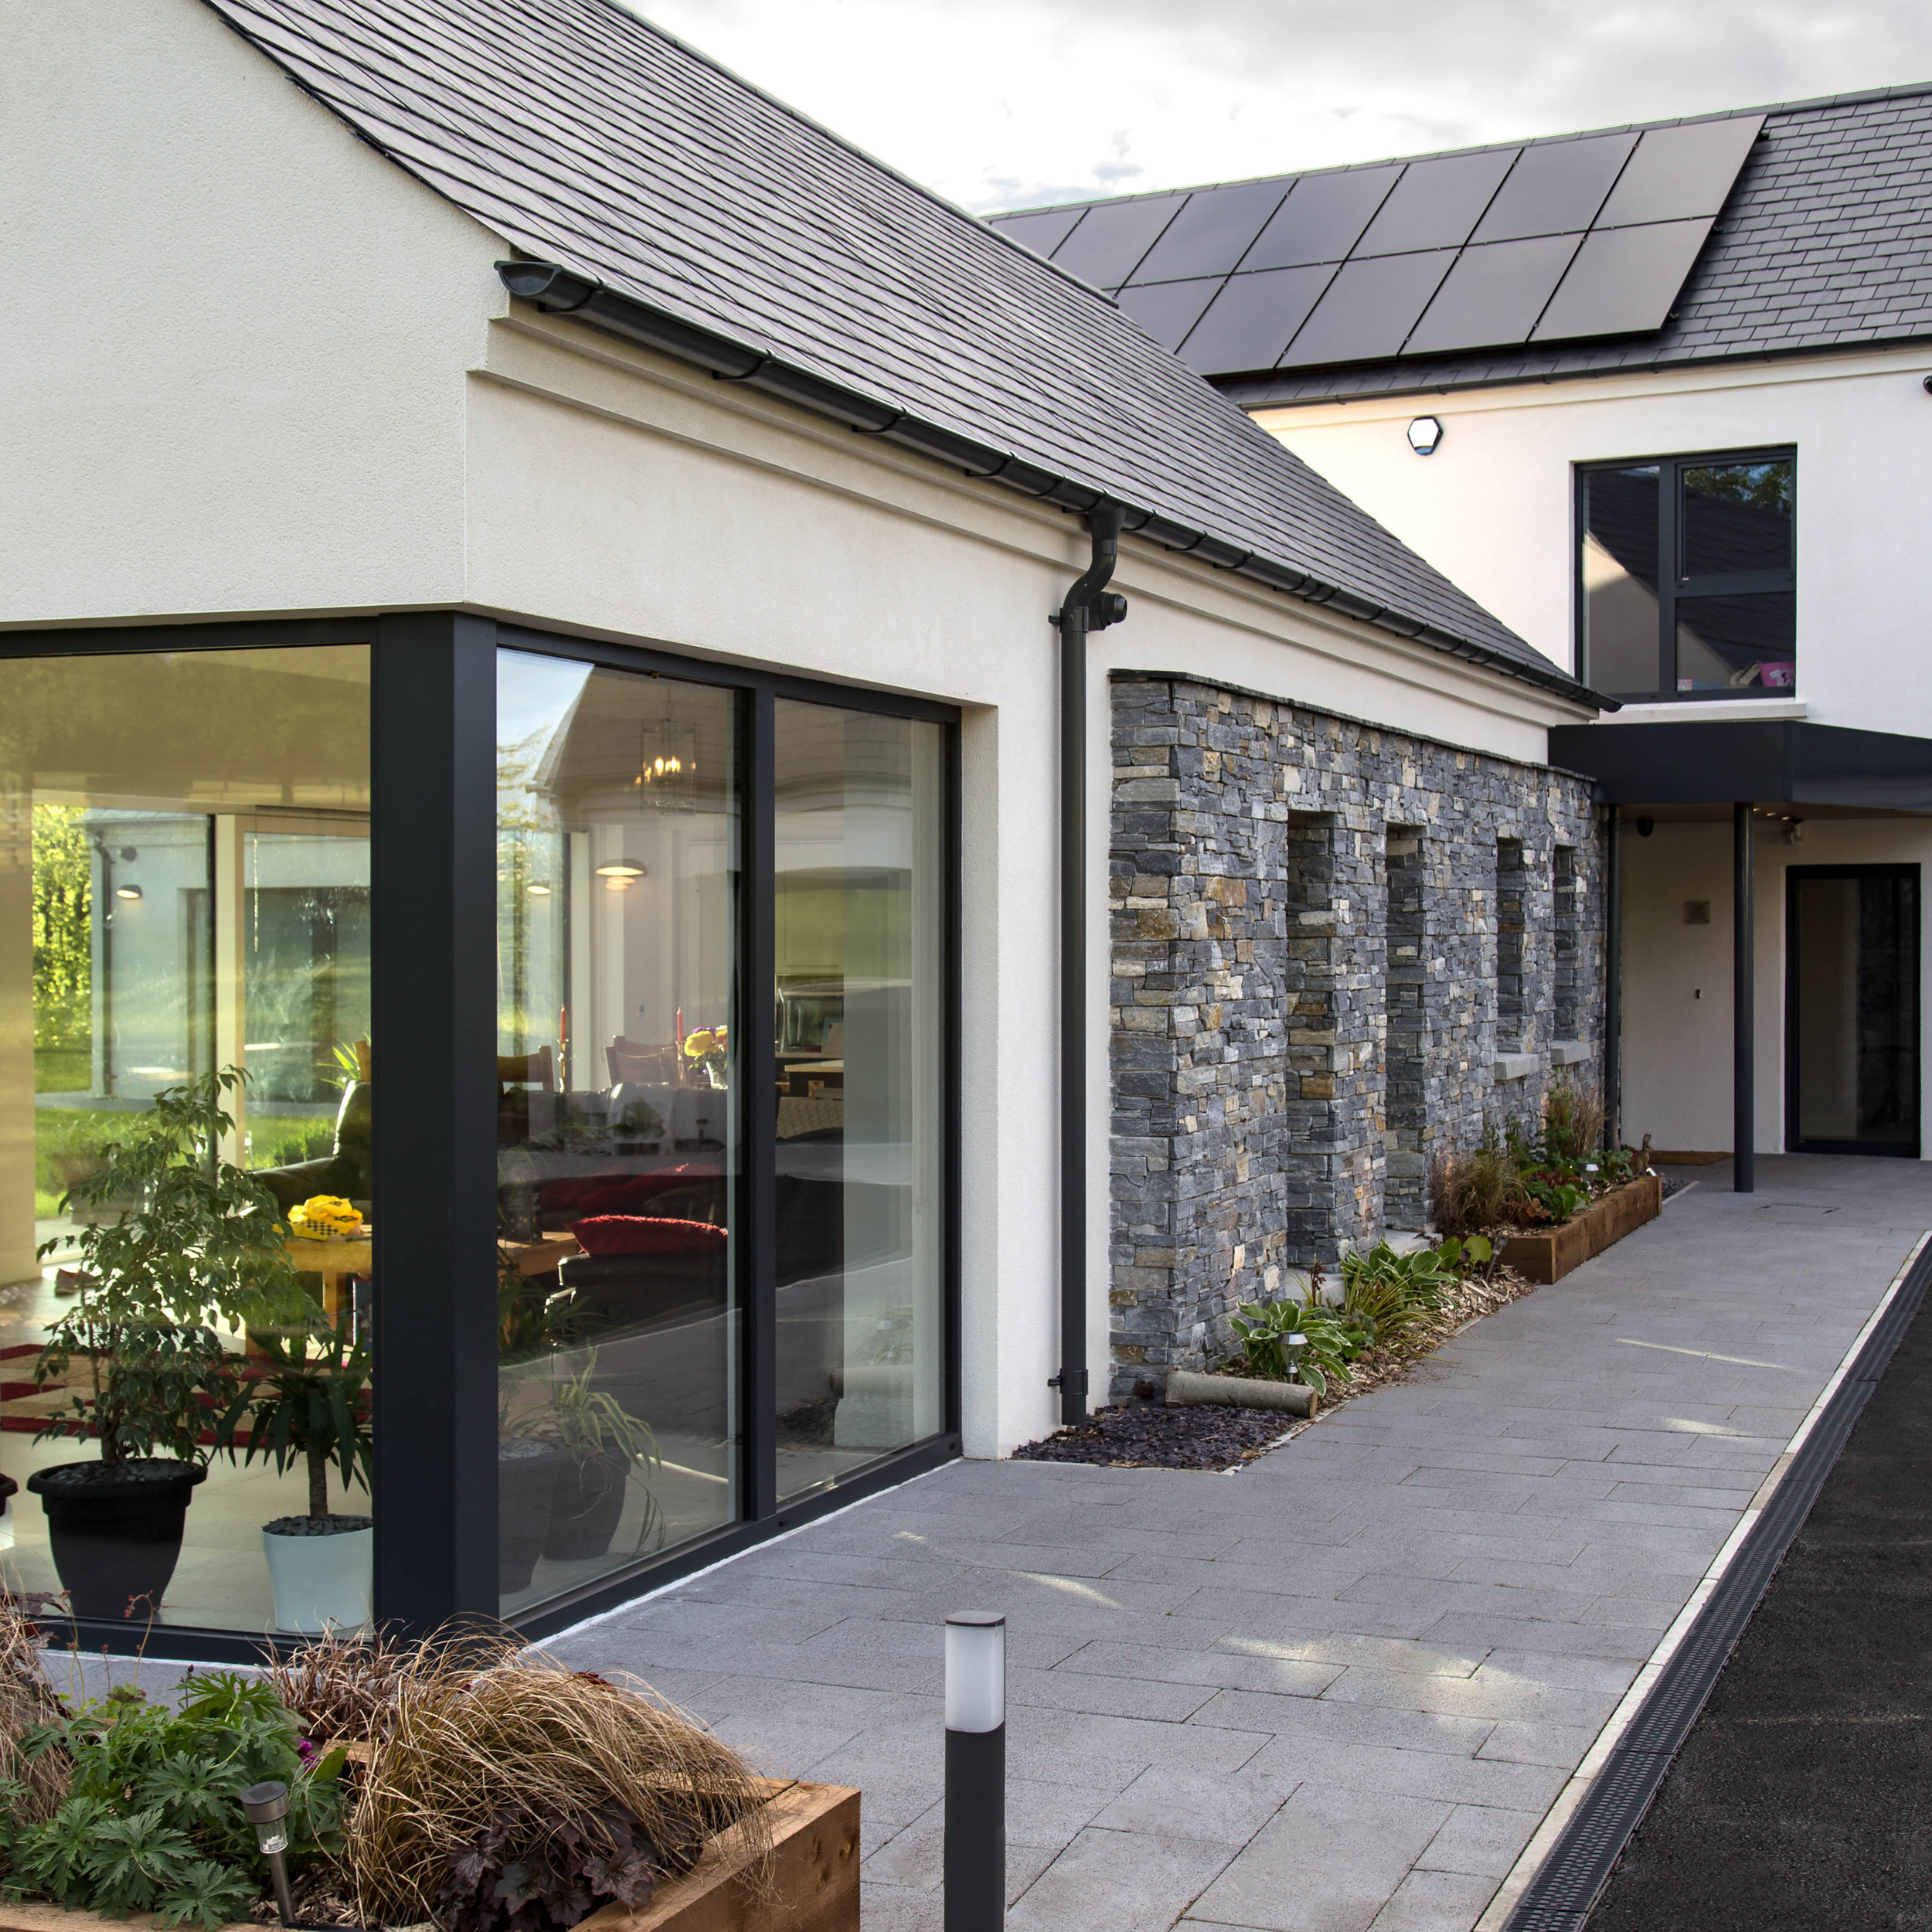 SummerIsland House, Co. Armagh  Certified Passive House - A rated for energy efficiency